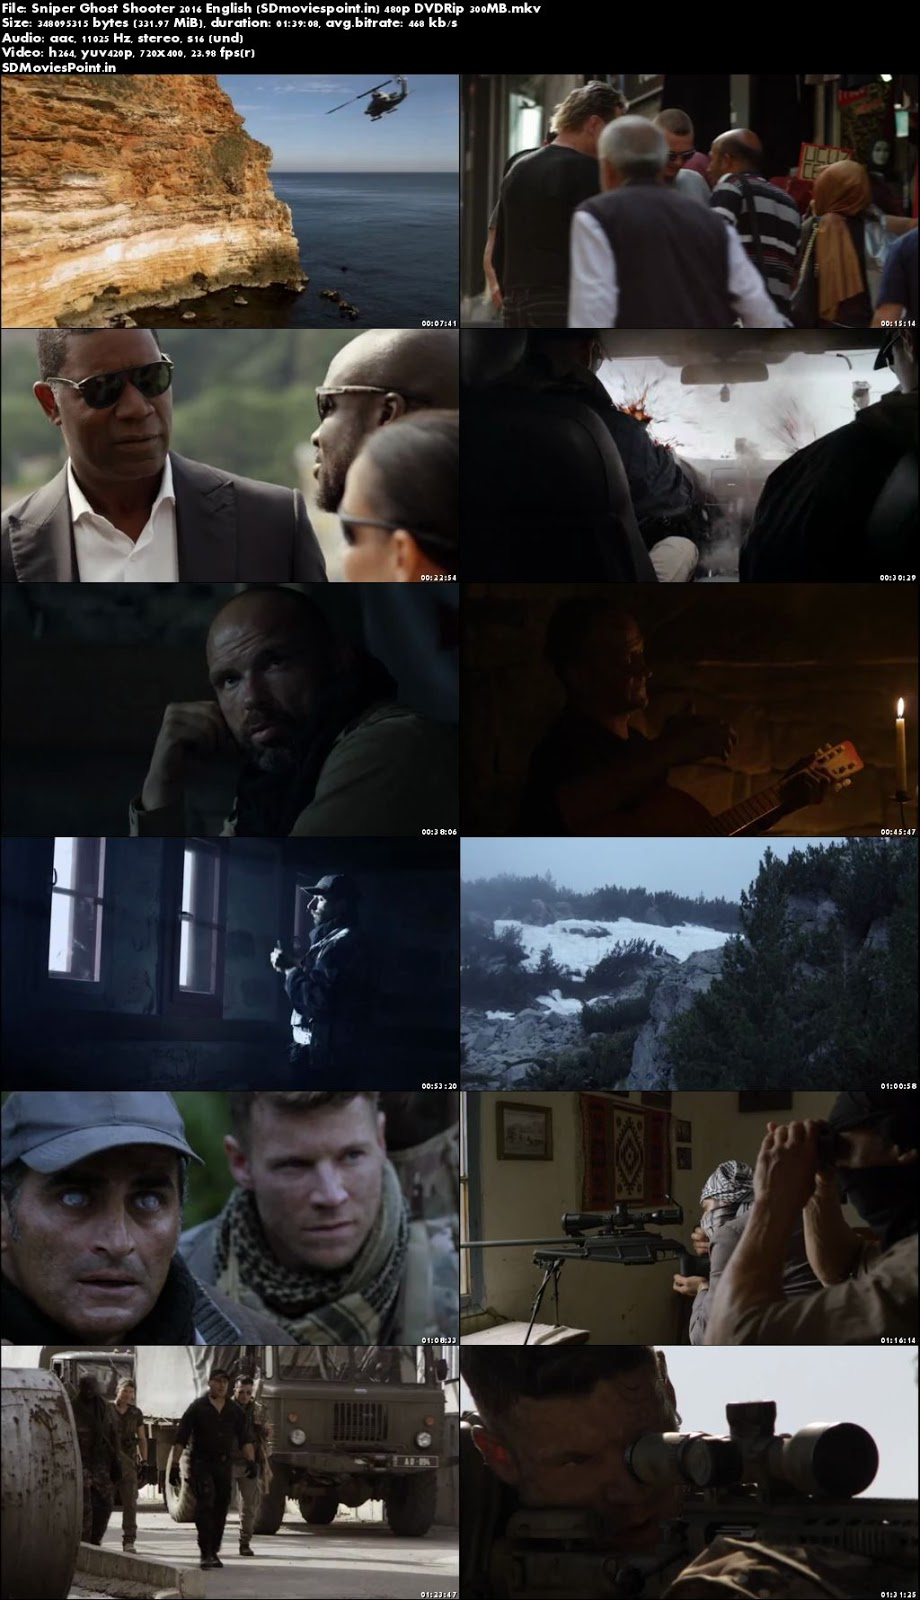 Poster Sniper Ghost Shooter 2016 Full HD Movie Download